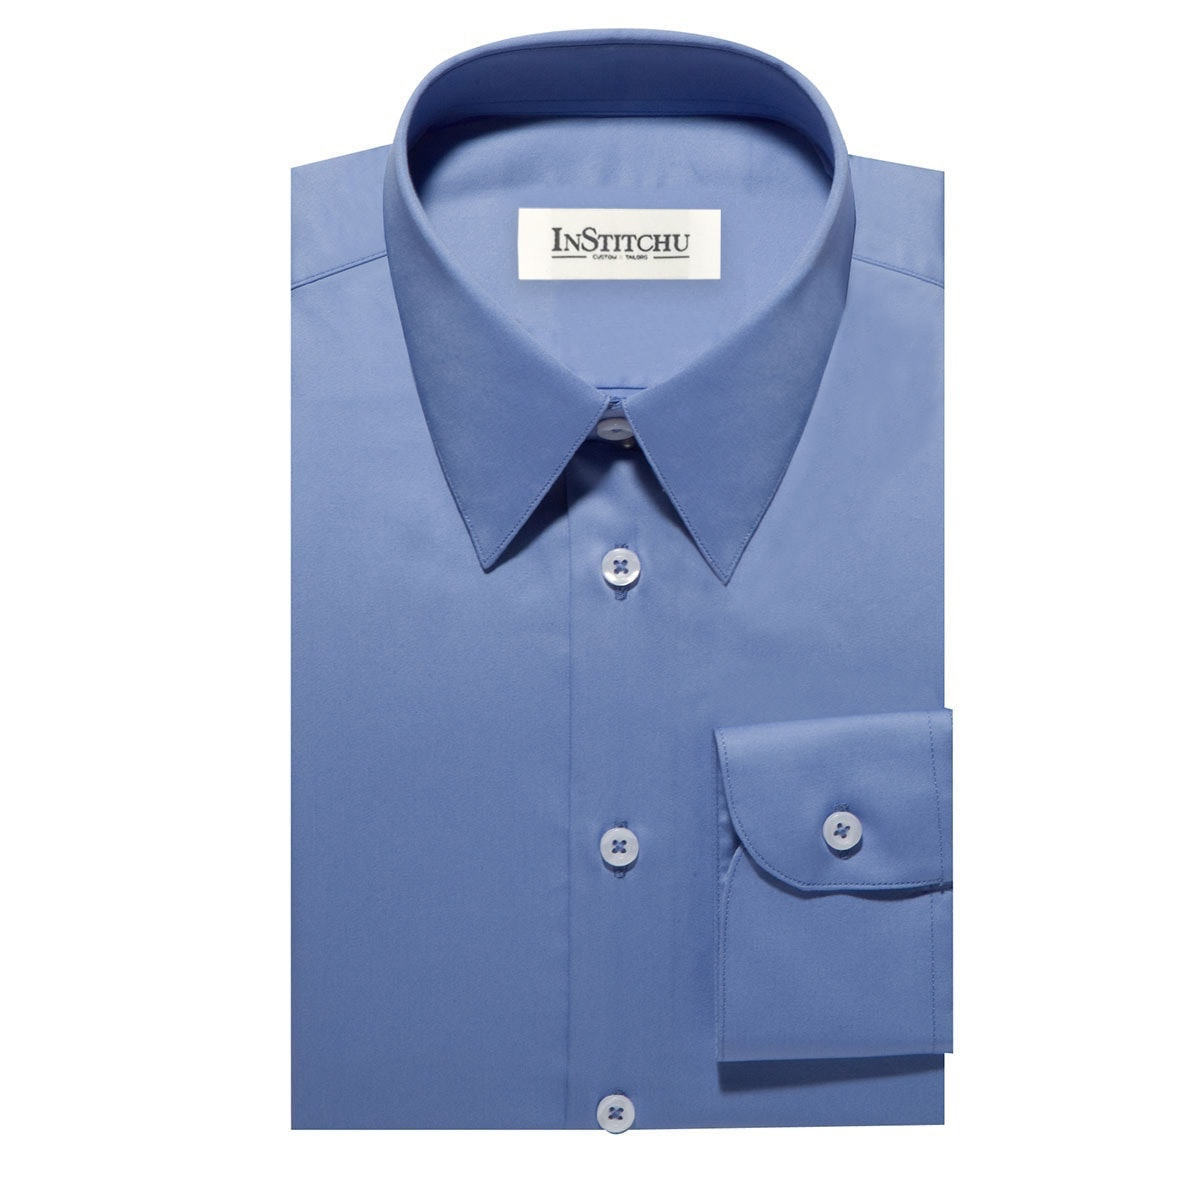 InStitchu Collection The Coin Blue Shirt